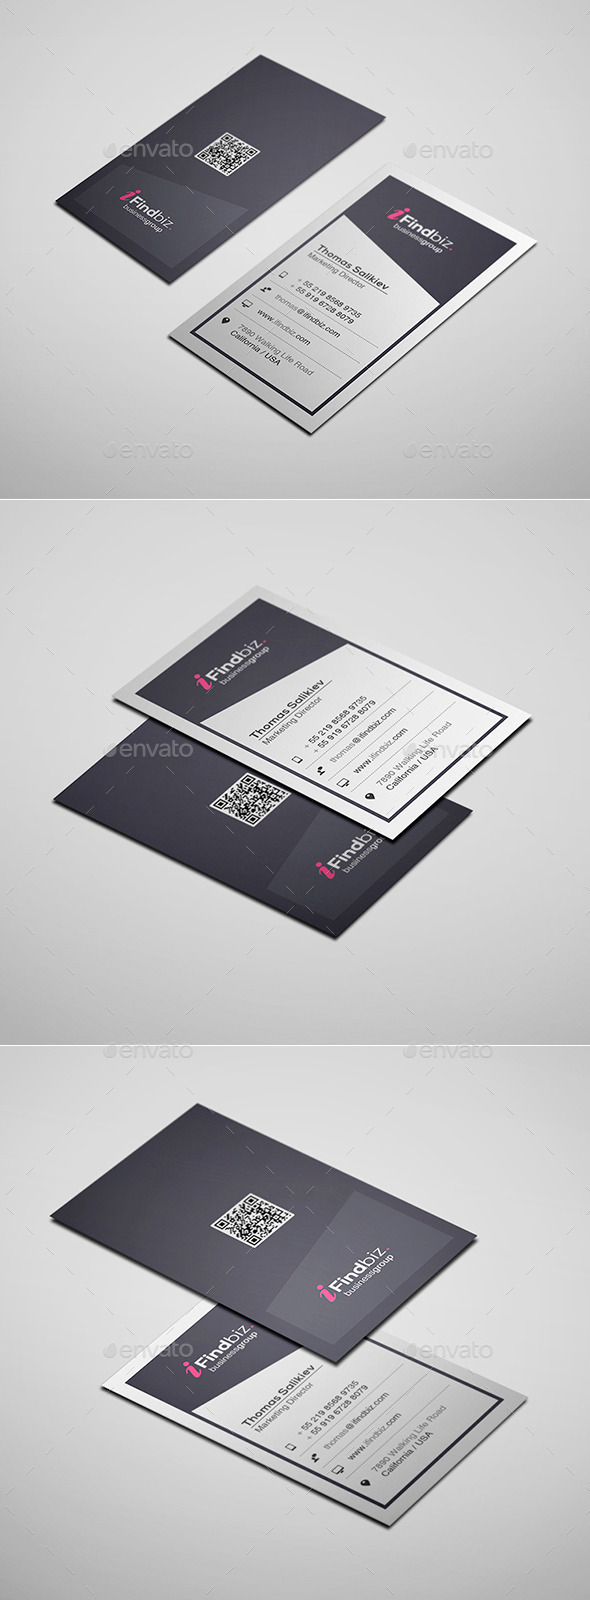 GraphicRiver Business Card Vol 05 11447755